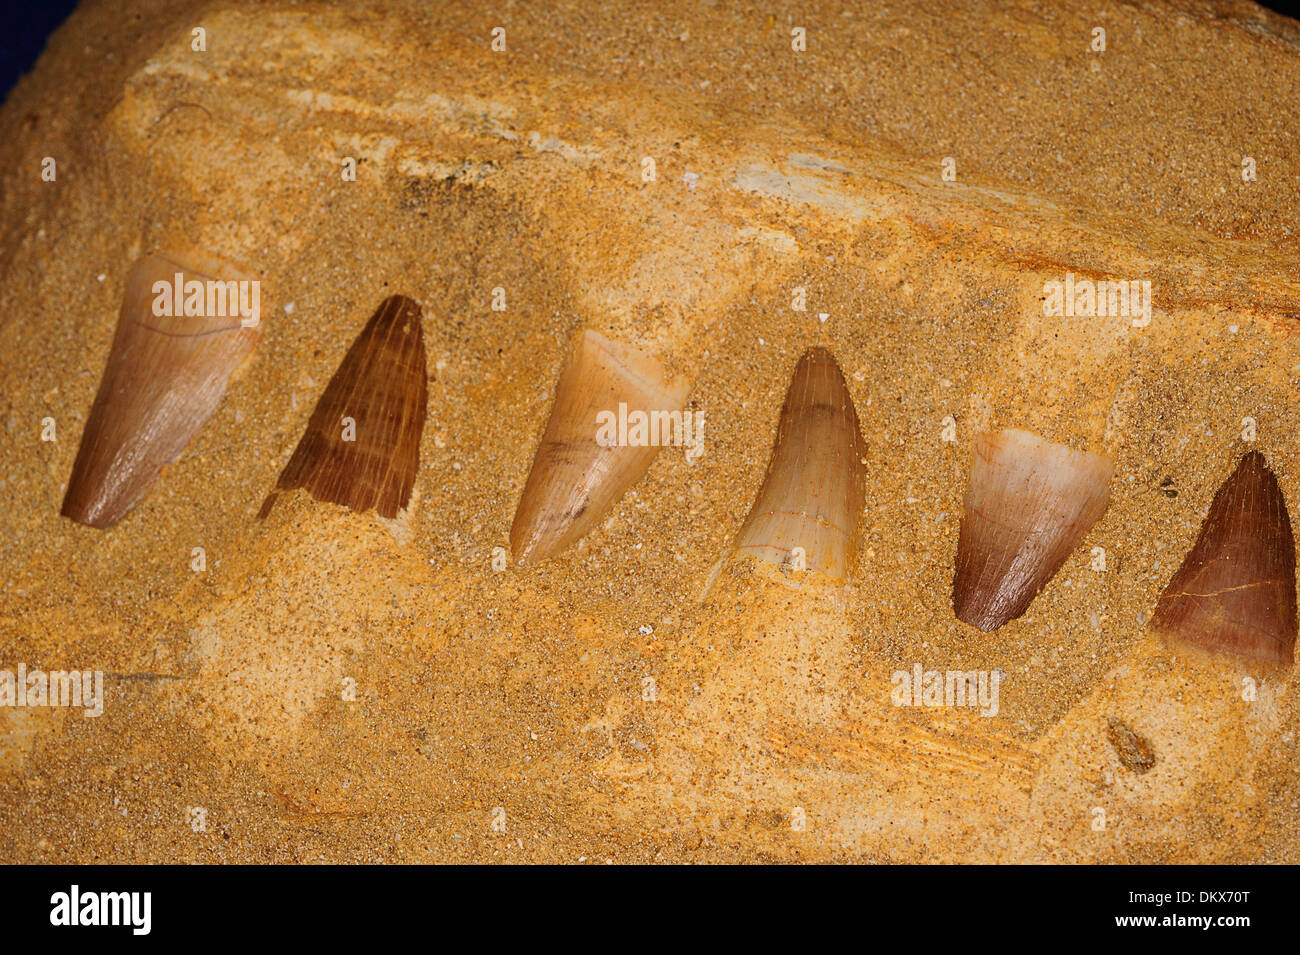 Fossil teeth of Mesosaurus sp., an extinct genus of reptile from the Early Permian of southern Africa and South America. - Stock Image